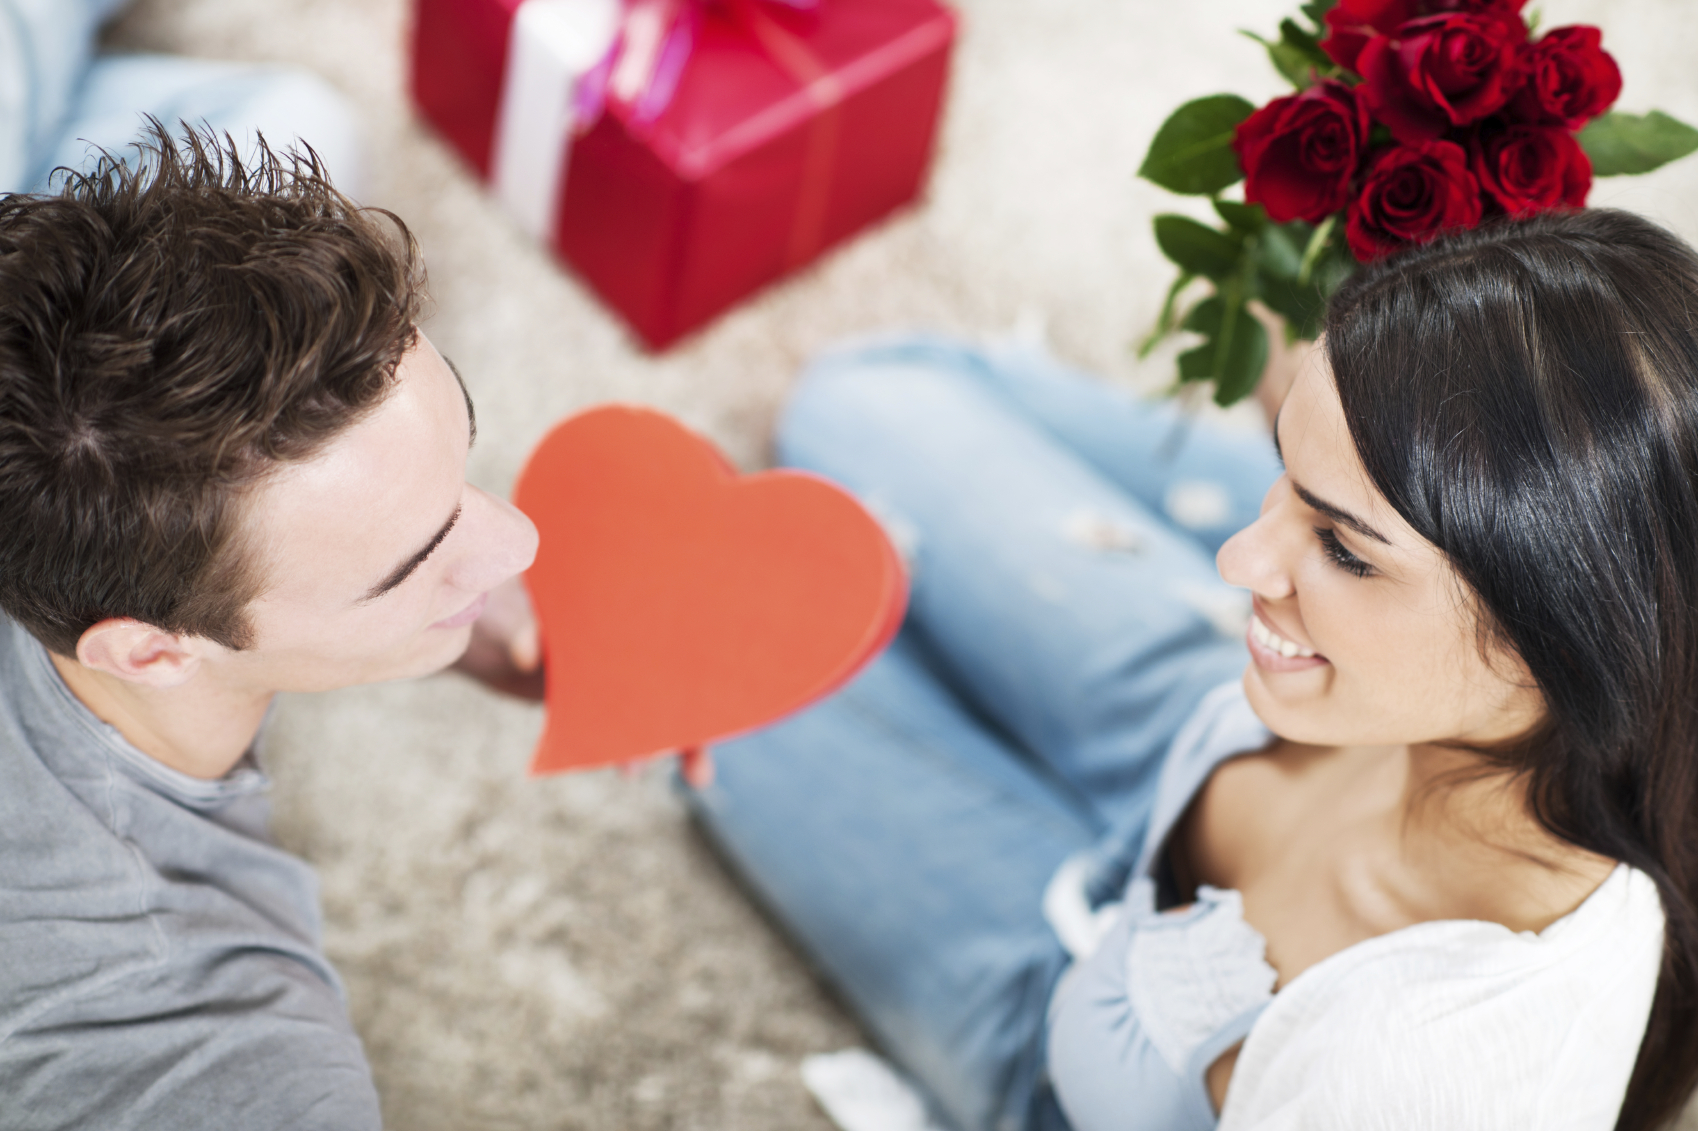 Couple sitting on the floor with presents for Valentines Day.